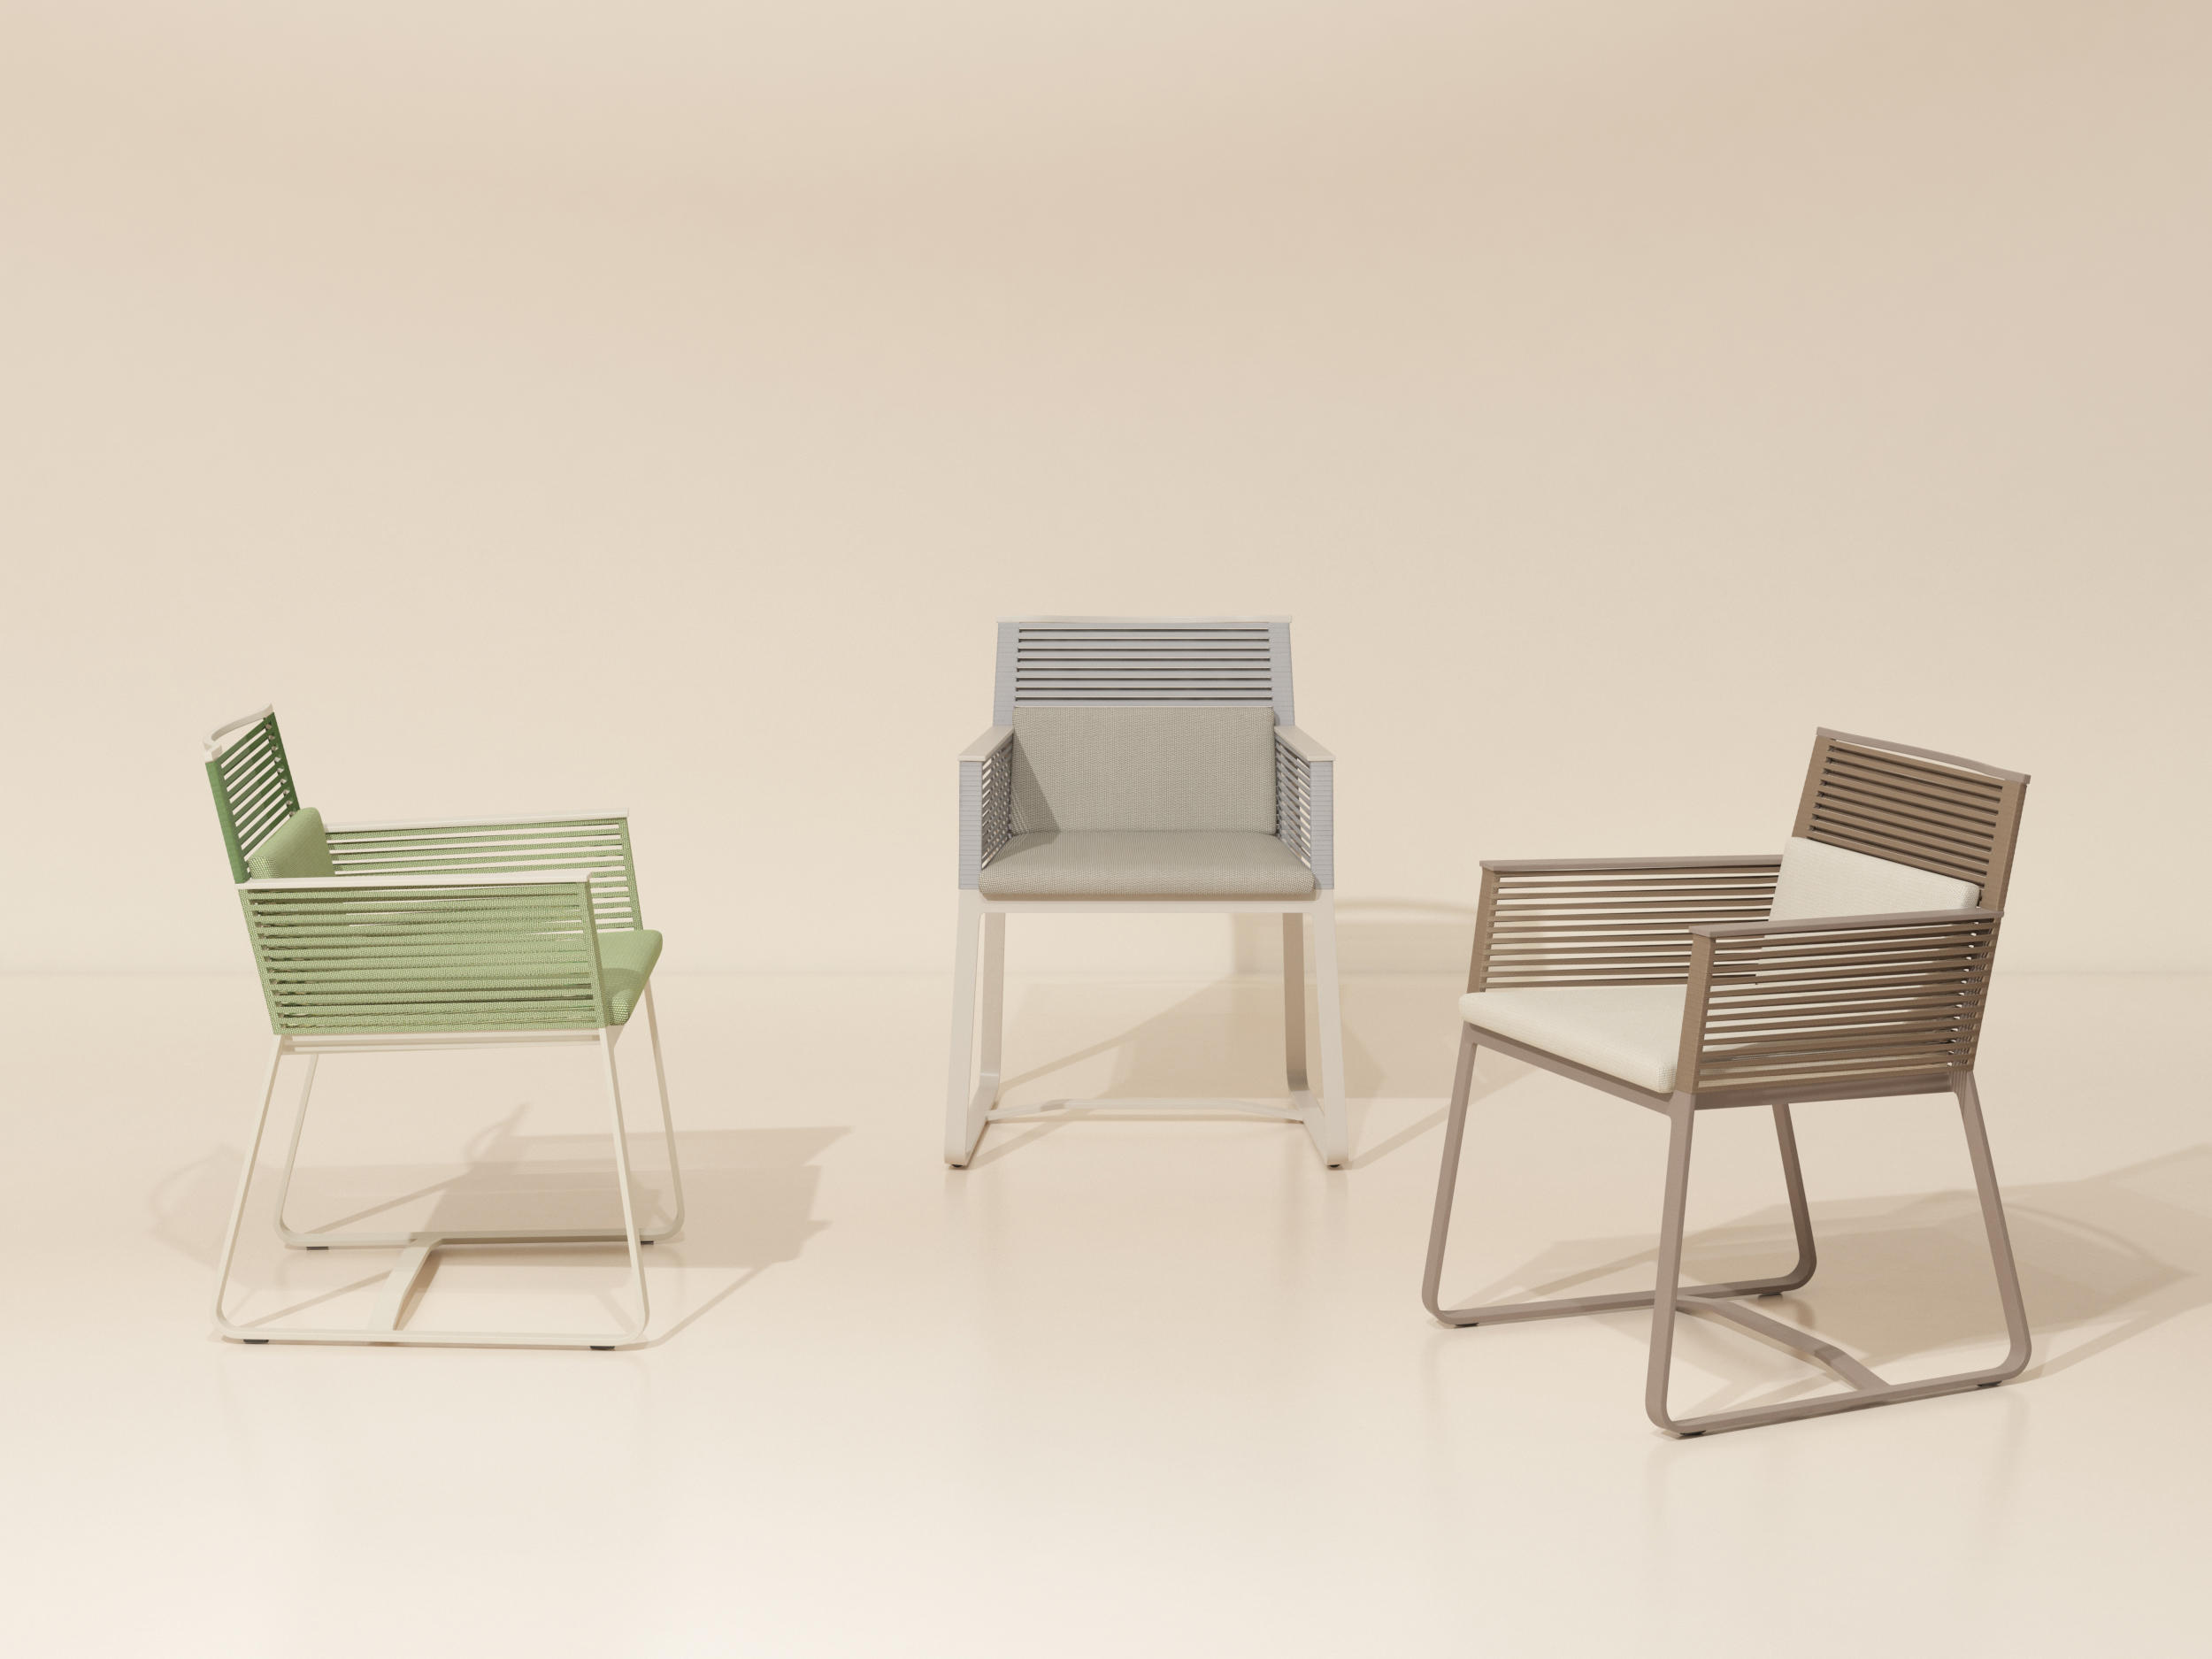 Ordinaire Landscape Dining Armchair By KETTAL | Chairs